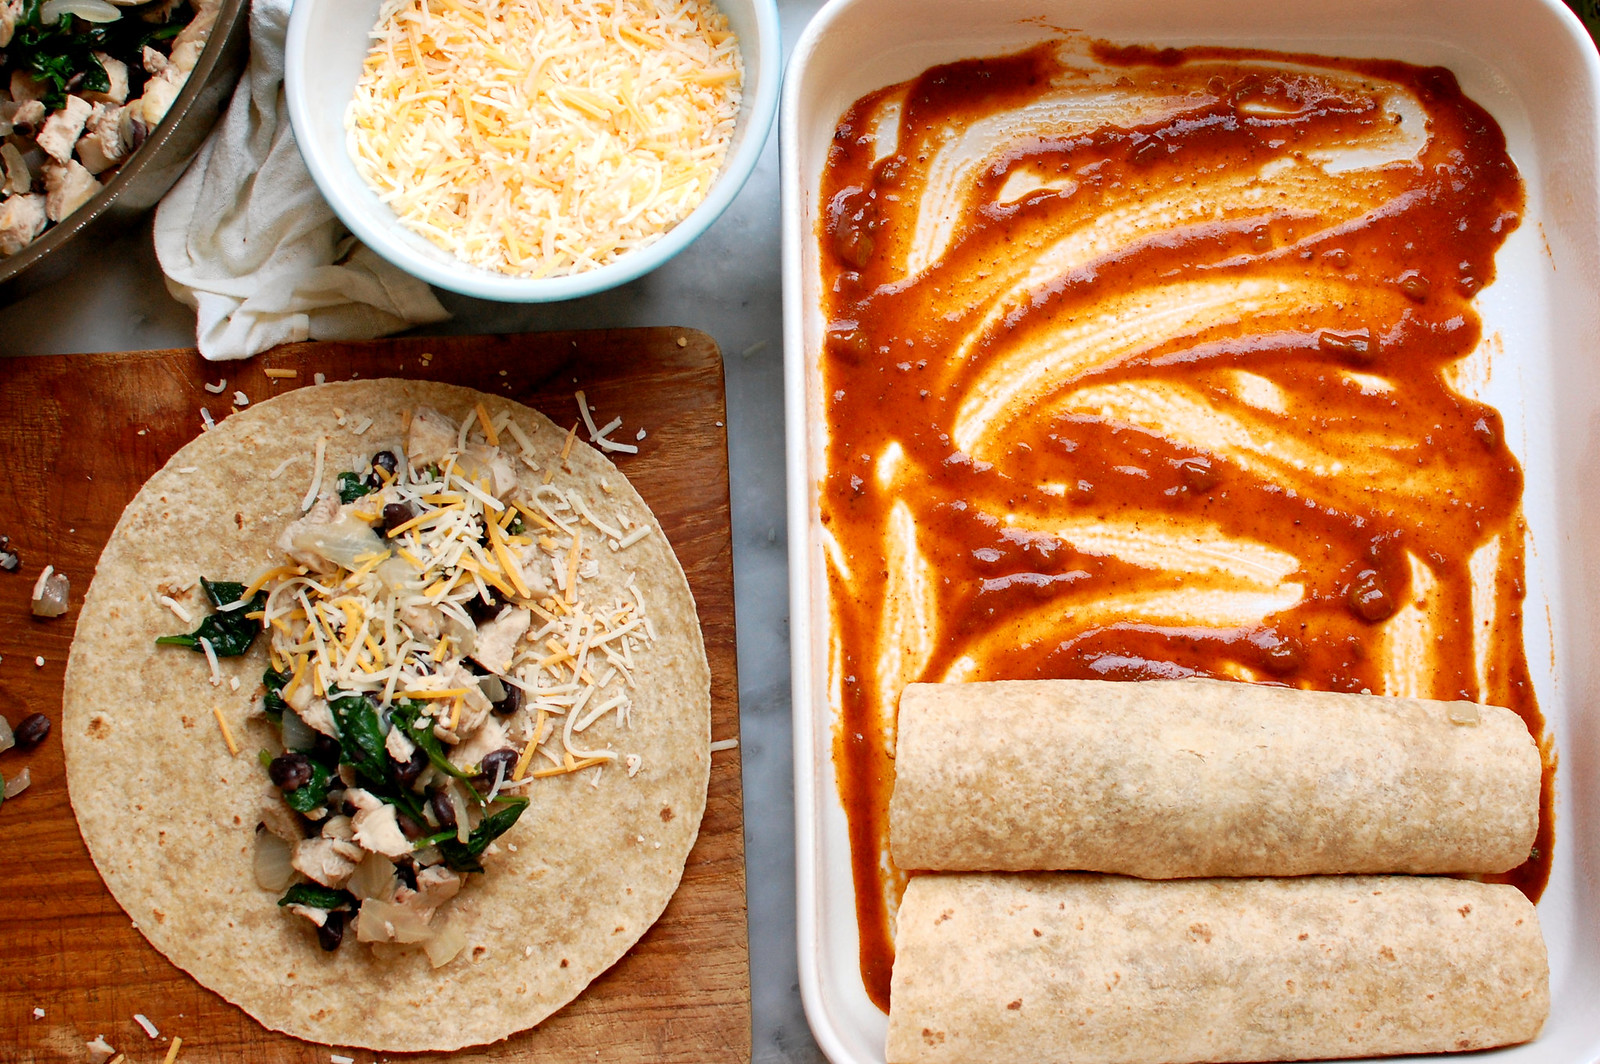 enchilada ingredients being rolled in tortillas with cheese and enchilada sauce